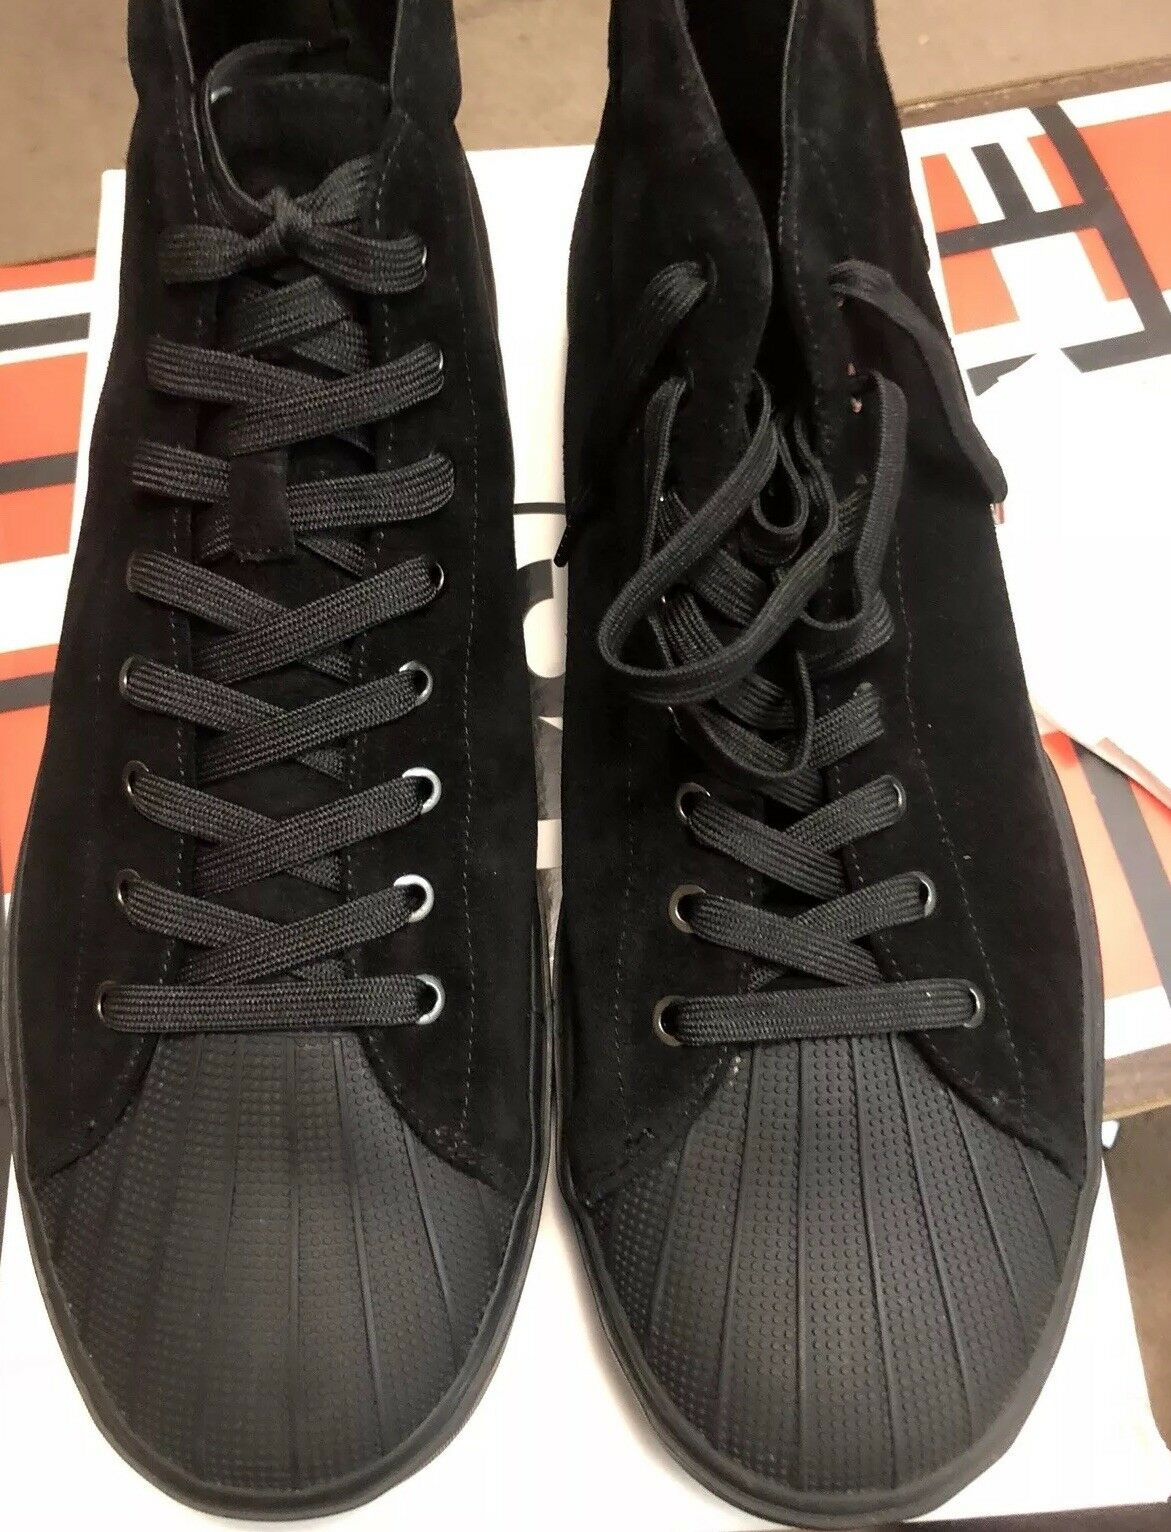 NEW   255 PSby Paul Smith Hightop Sneakers Black Suede